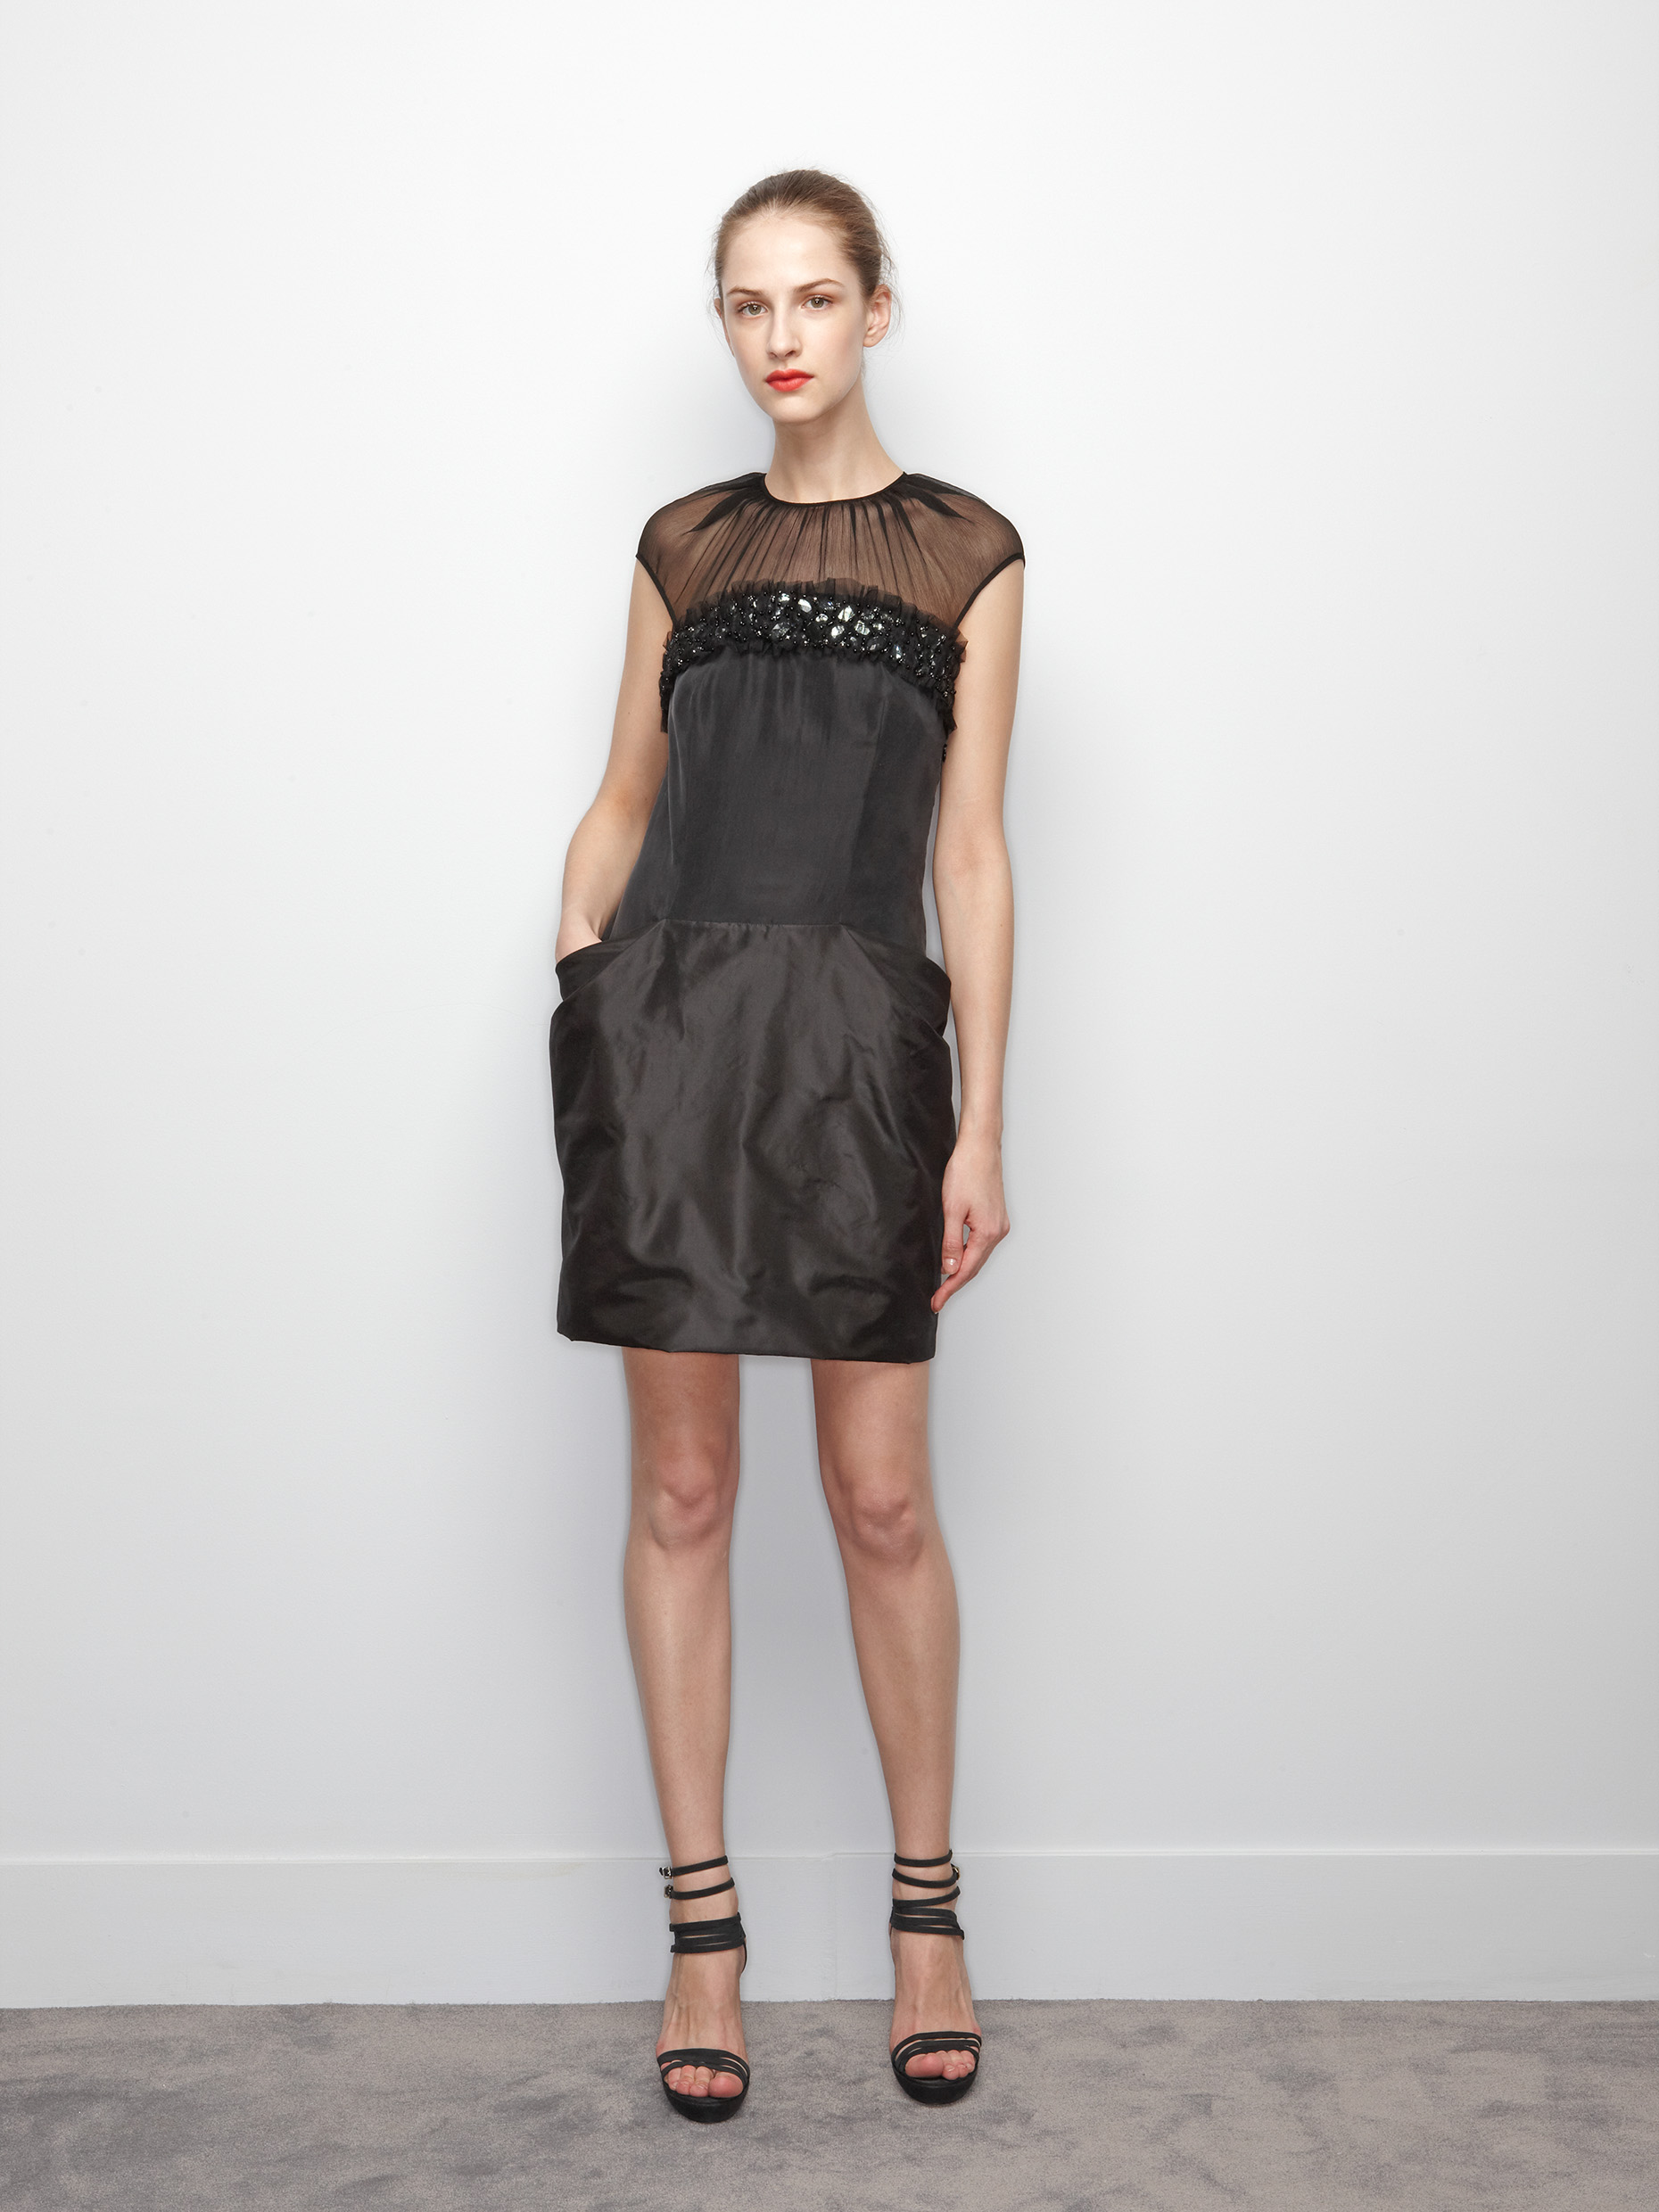 Viktor Rolf Launch Black Dress CapsuleCollection